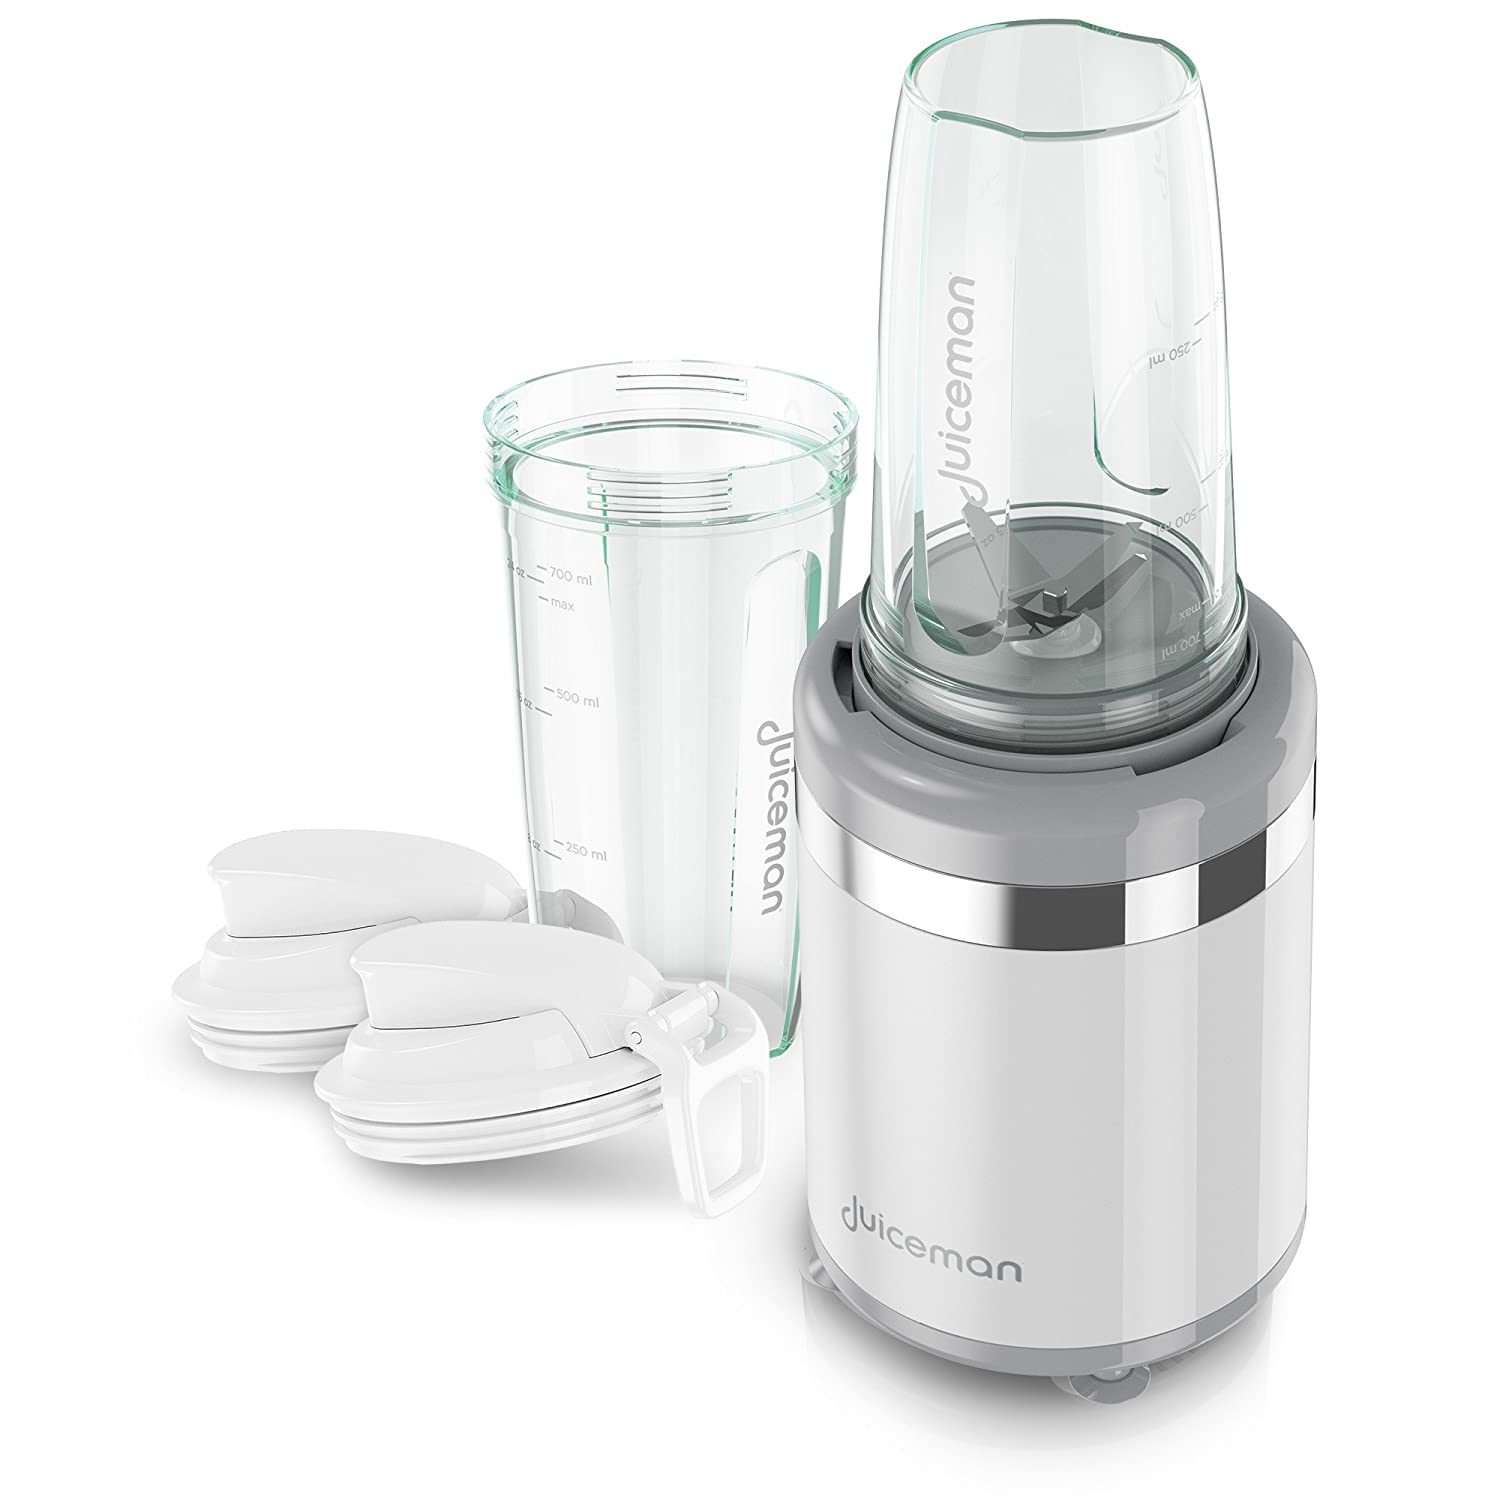 Juiceman JMB1000 Express Whole Juicer with 24 Ounce BPA-Free Portable Personal Blending Jars (with Travel Lids) by Juiceman   B01BONUUHY